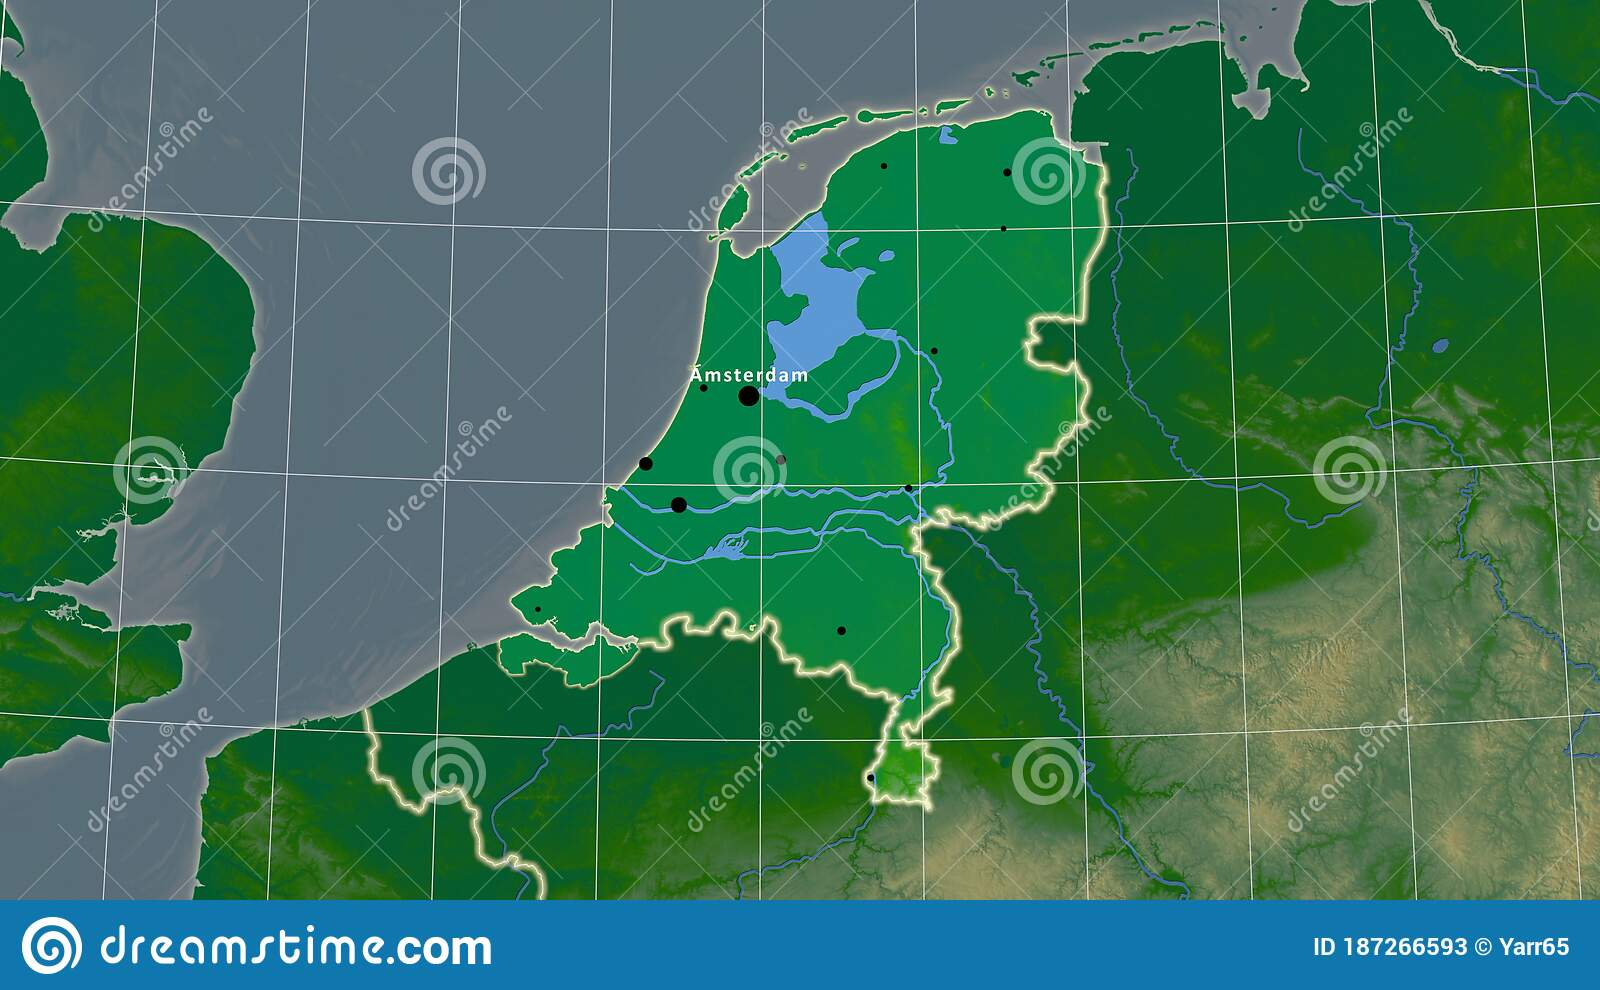 Image of: Netherlands Physical Composition Borders Stock Illustration Illustration Of Area Territory 187266593